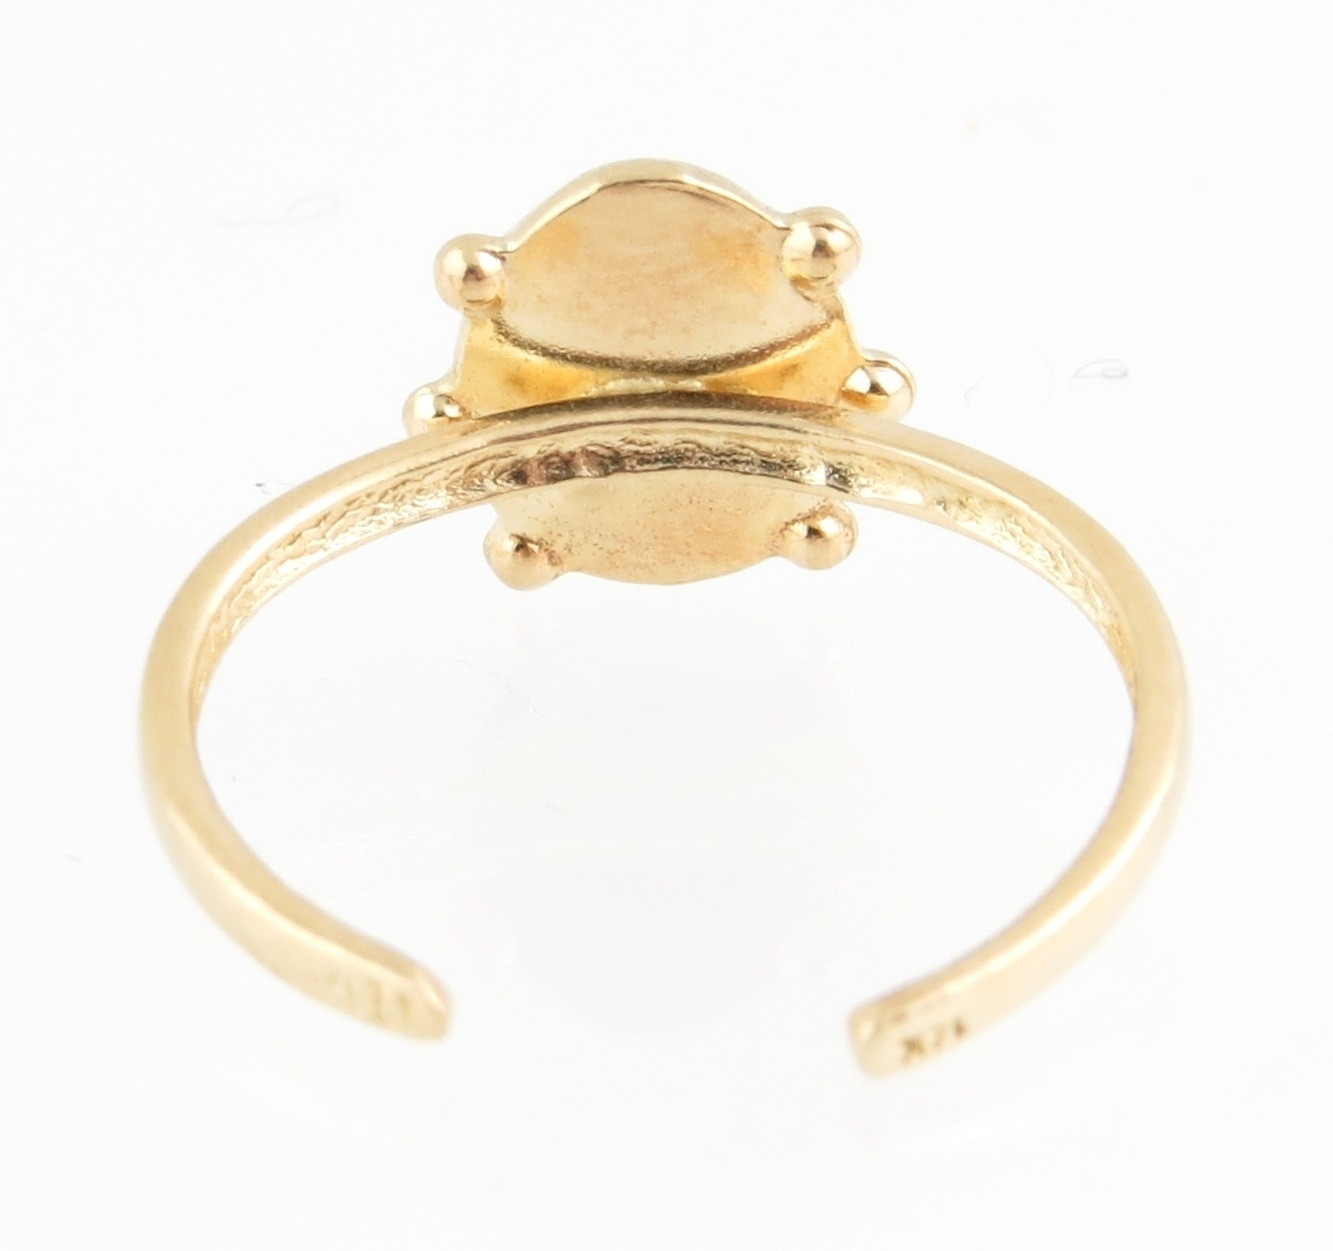 31 Most Wanted Stunning Gold Toe Rings For Women | Eternity Jewelry Regarding Most Up To Date Rose Gold Toe Rings (Gallery 8 of 15)